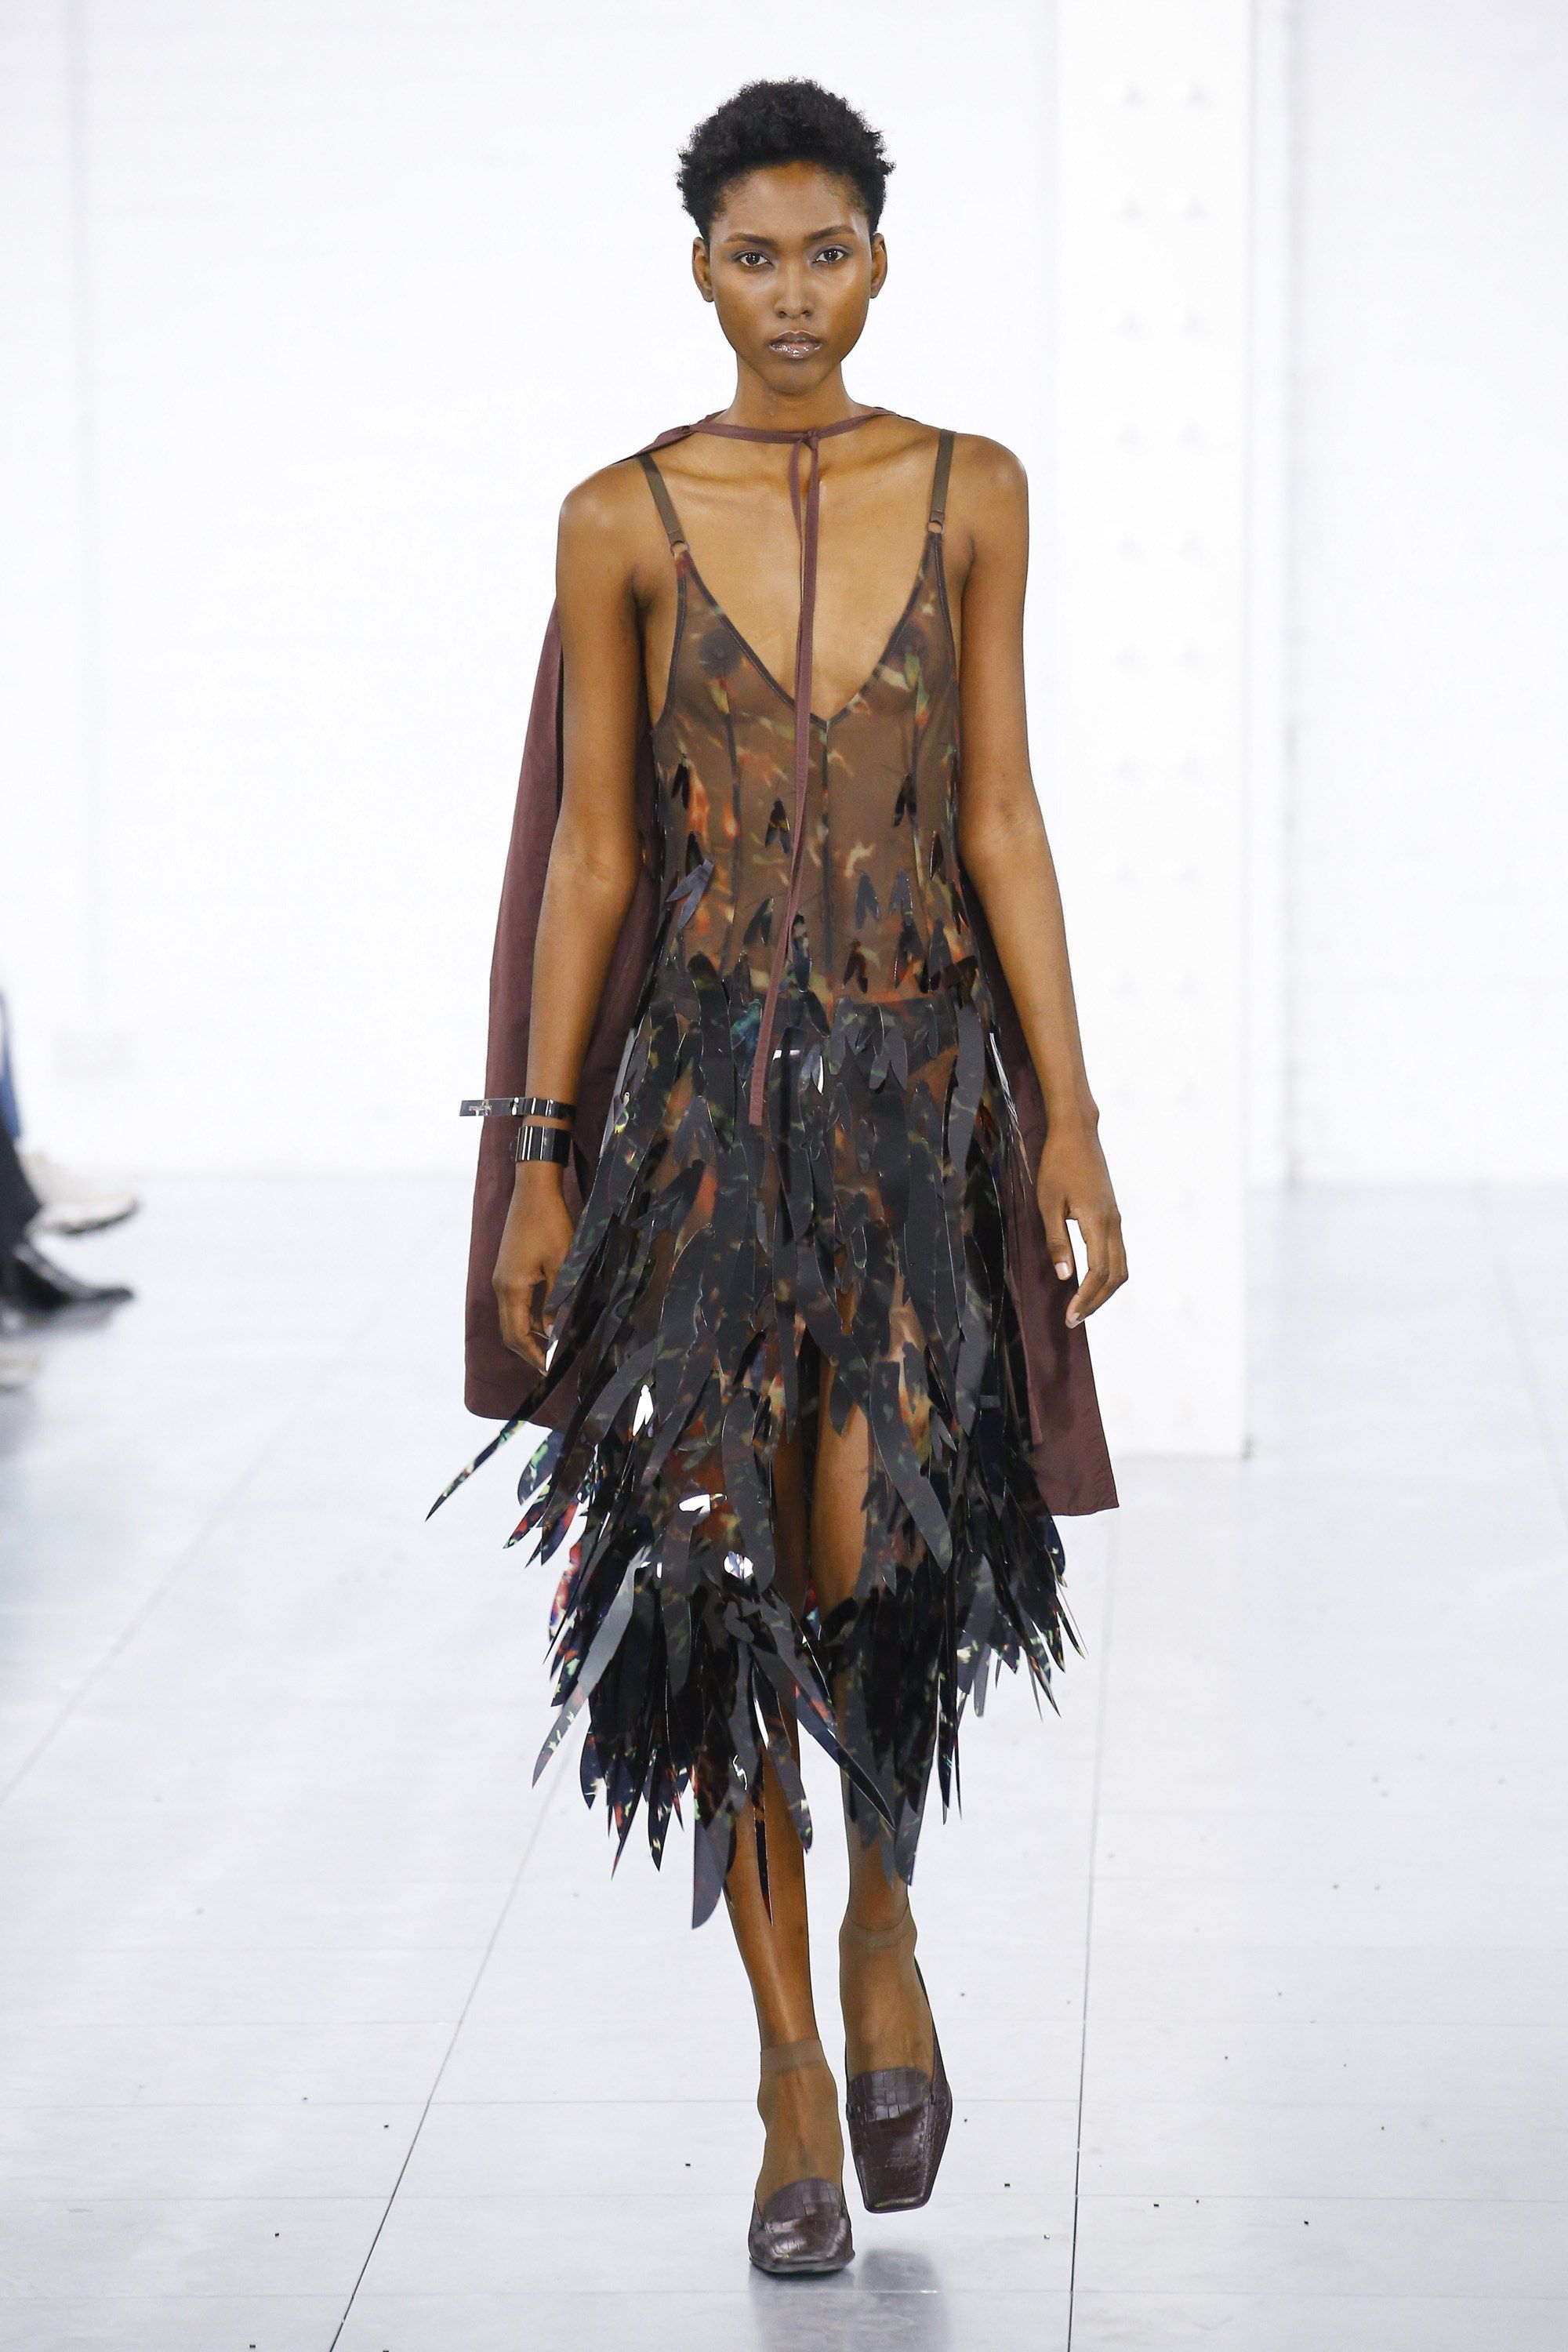 East fashion fall runway recommend to wear in autumn in 2019